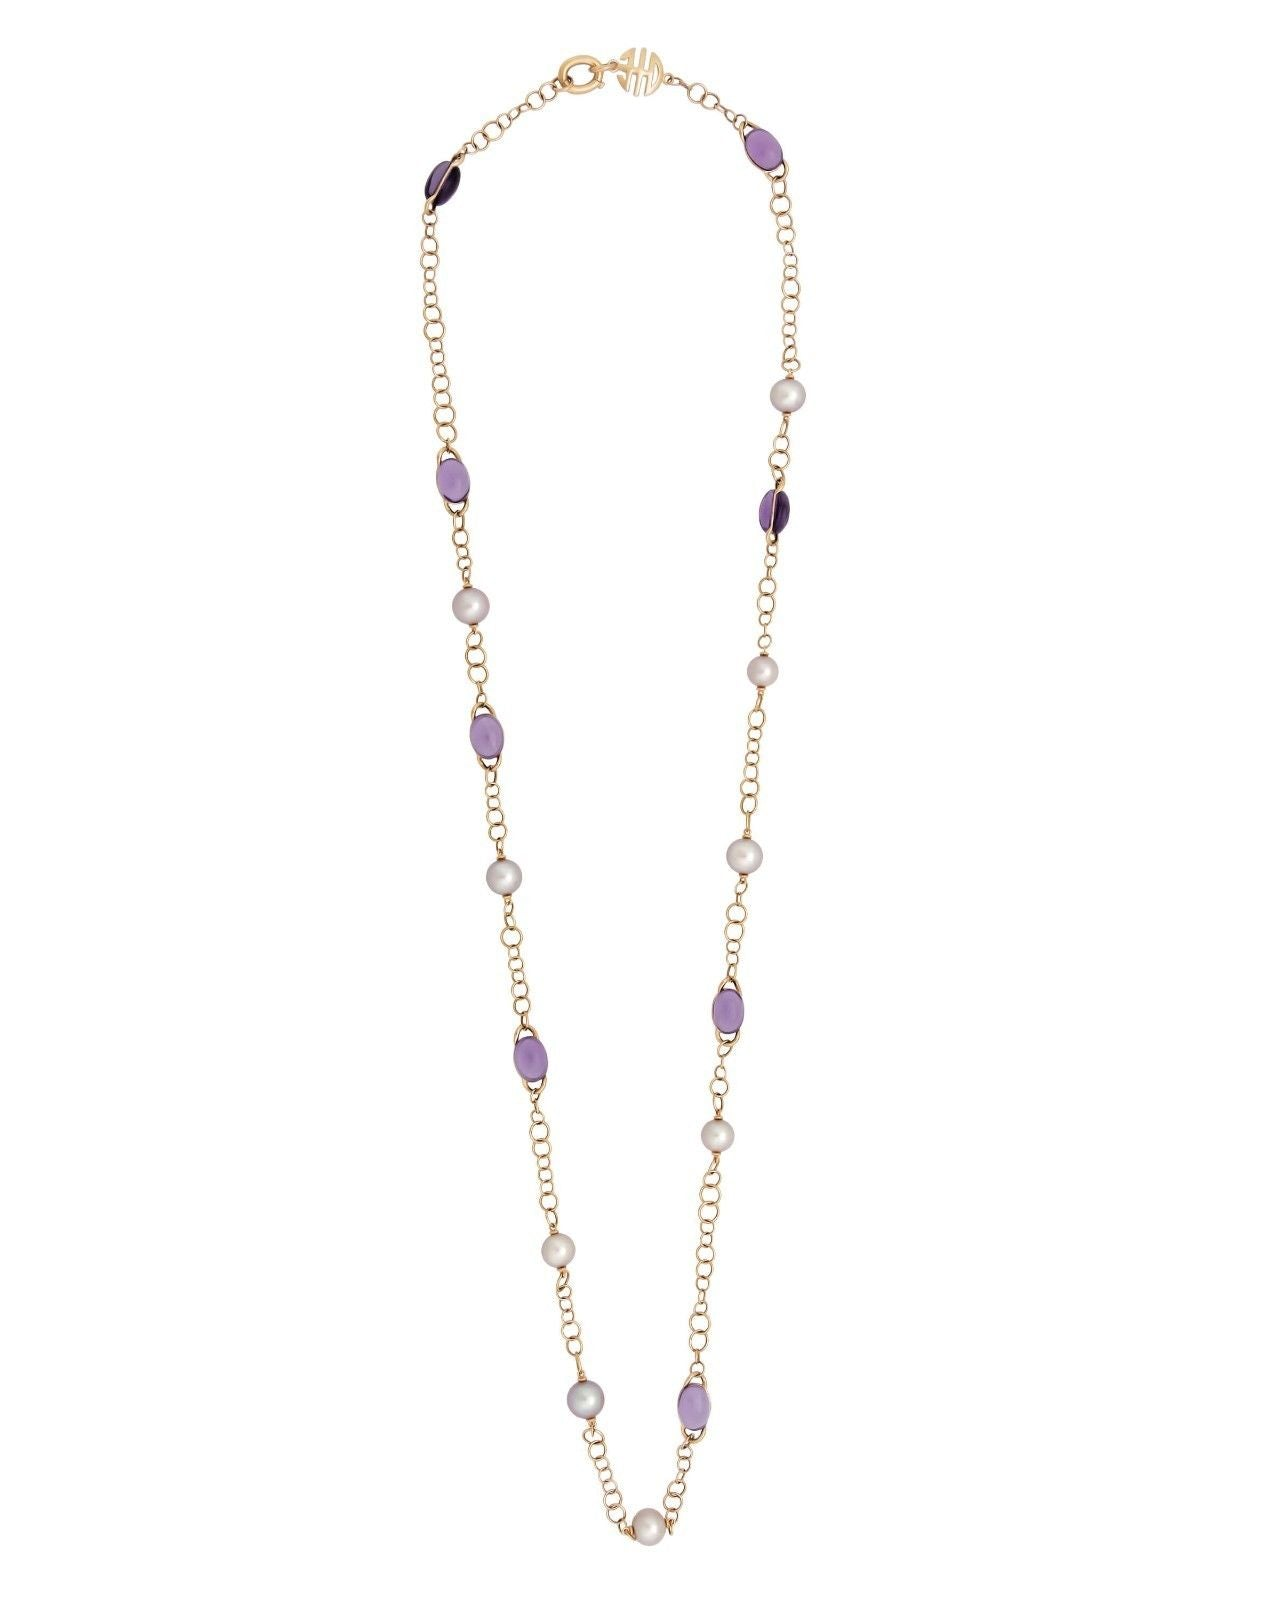 Mimi Milano Necklace In 18K Rose Gold, Amethyst Violet Pearls C267R3A